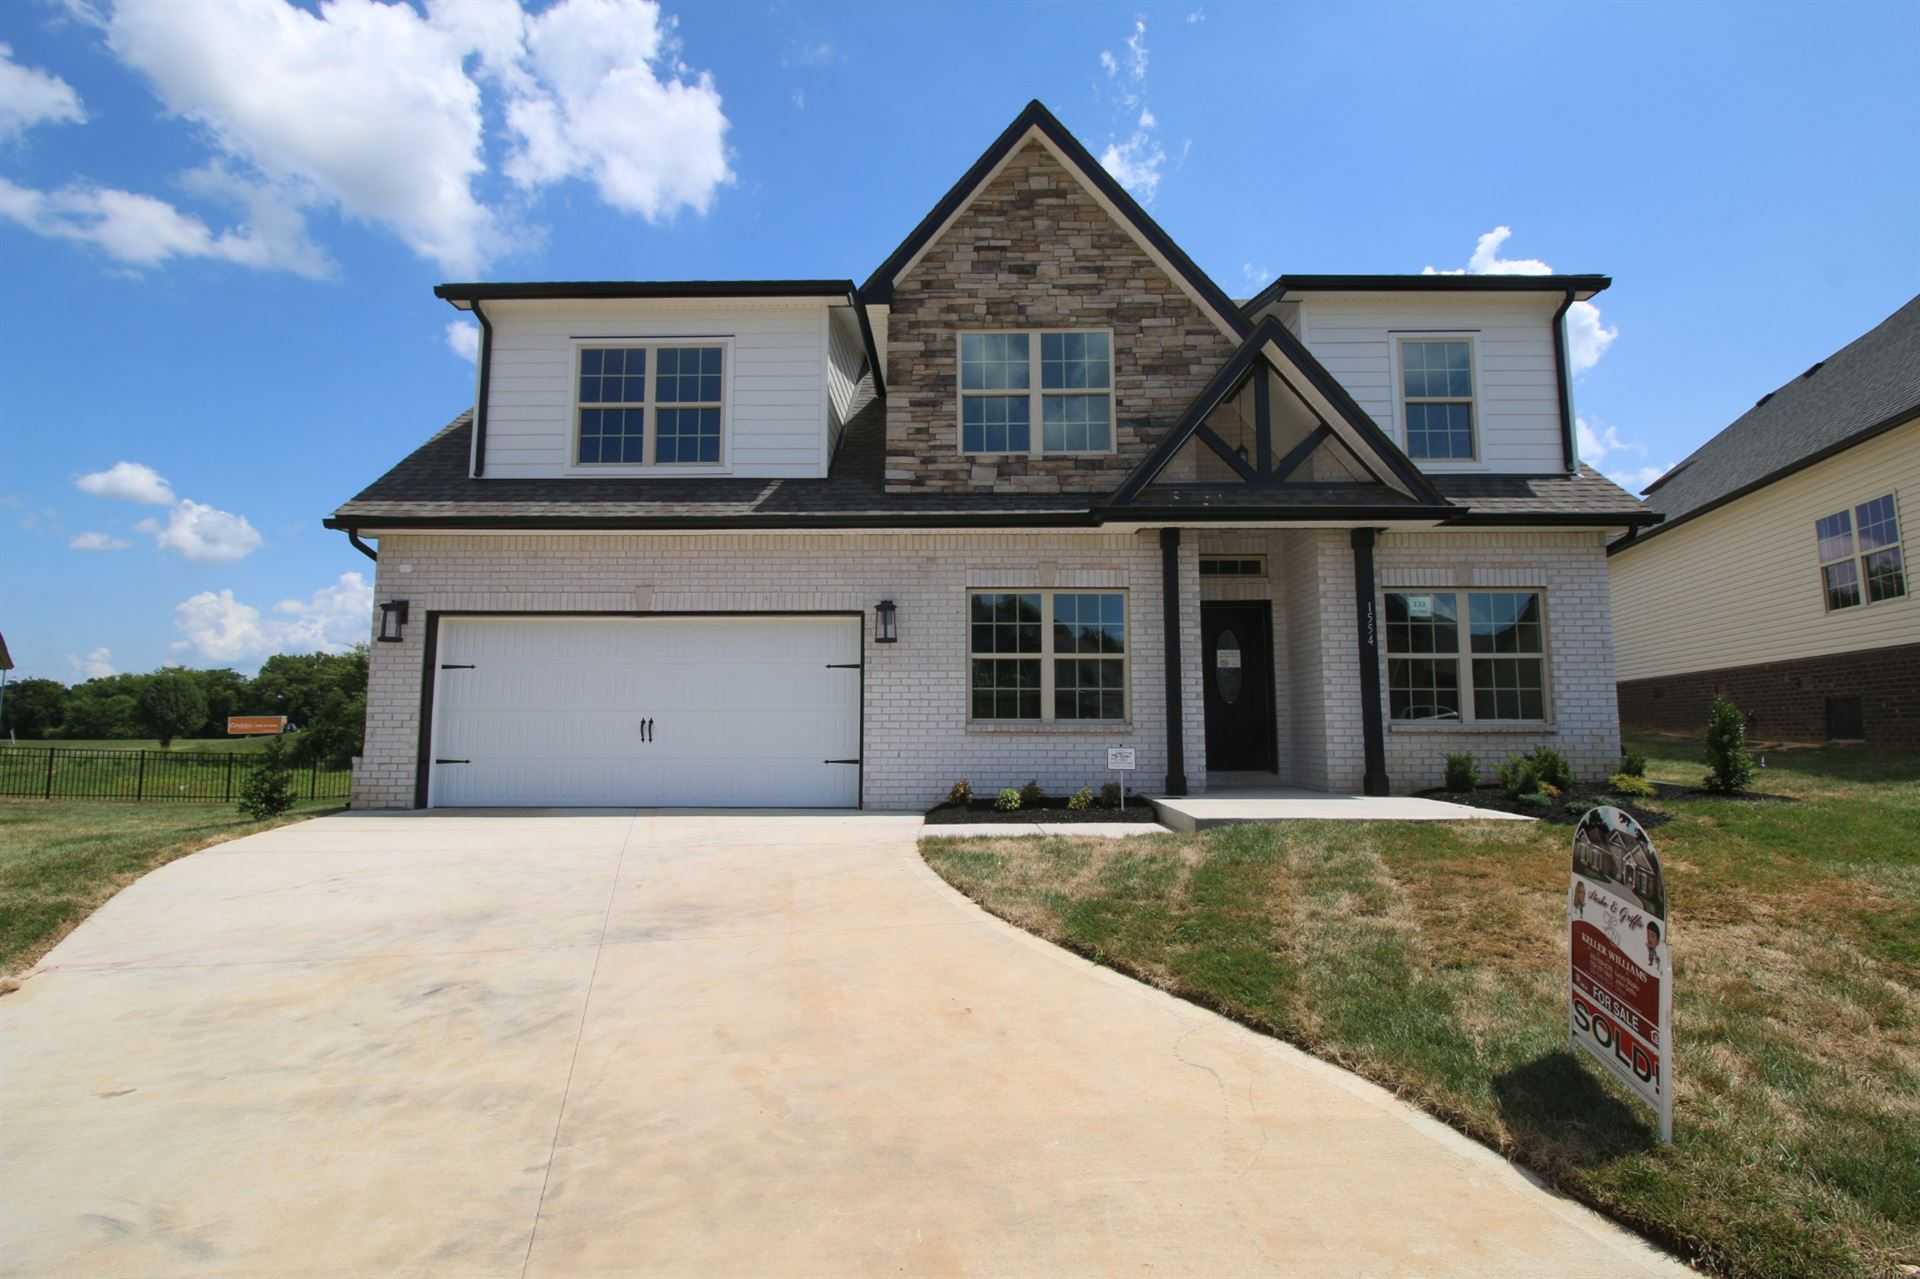 133 Charleston Oaks, Clarksville, TN 37042 - MLS#: 2221075